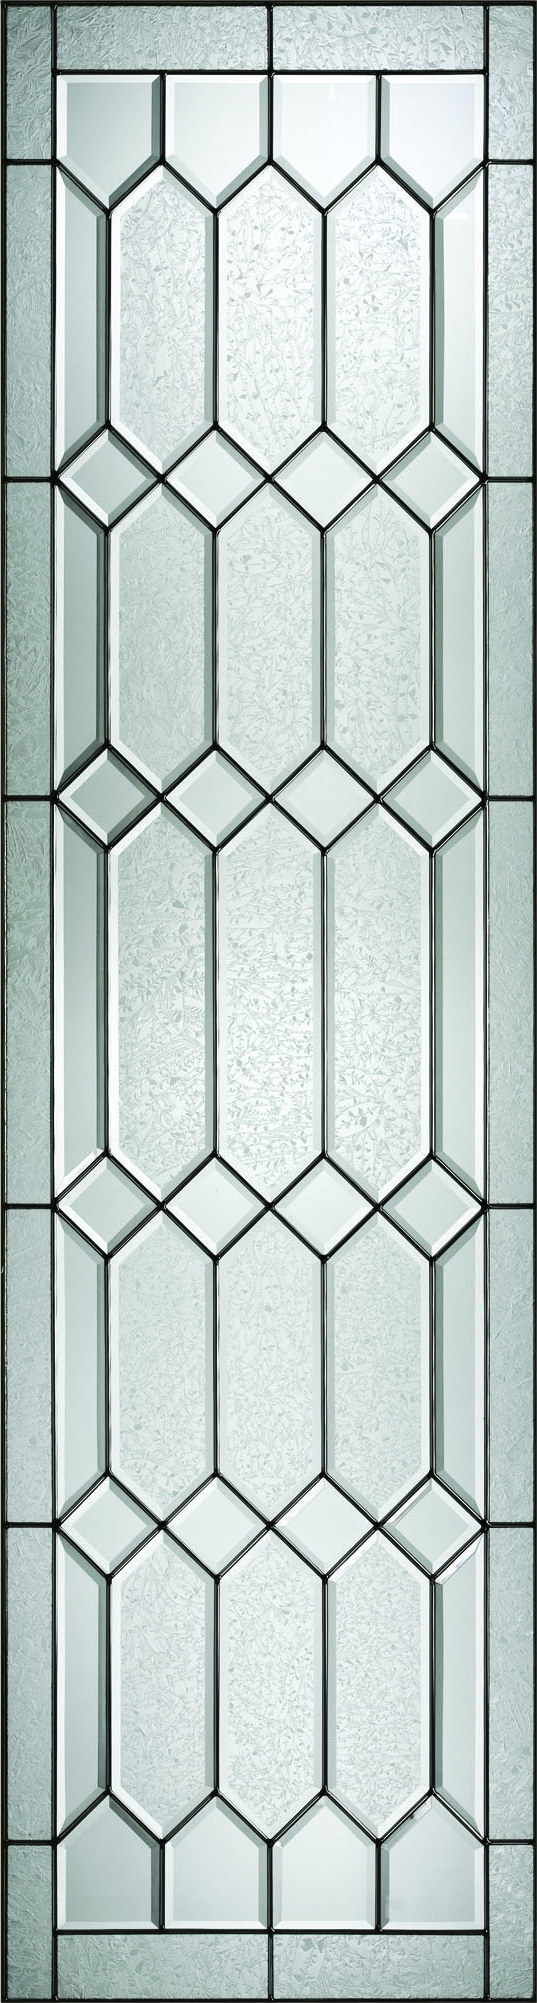 Therma Tru Crystalline 20 Or 22 X 80 Glass And Frame